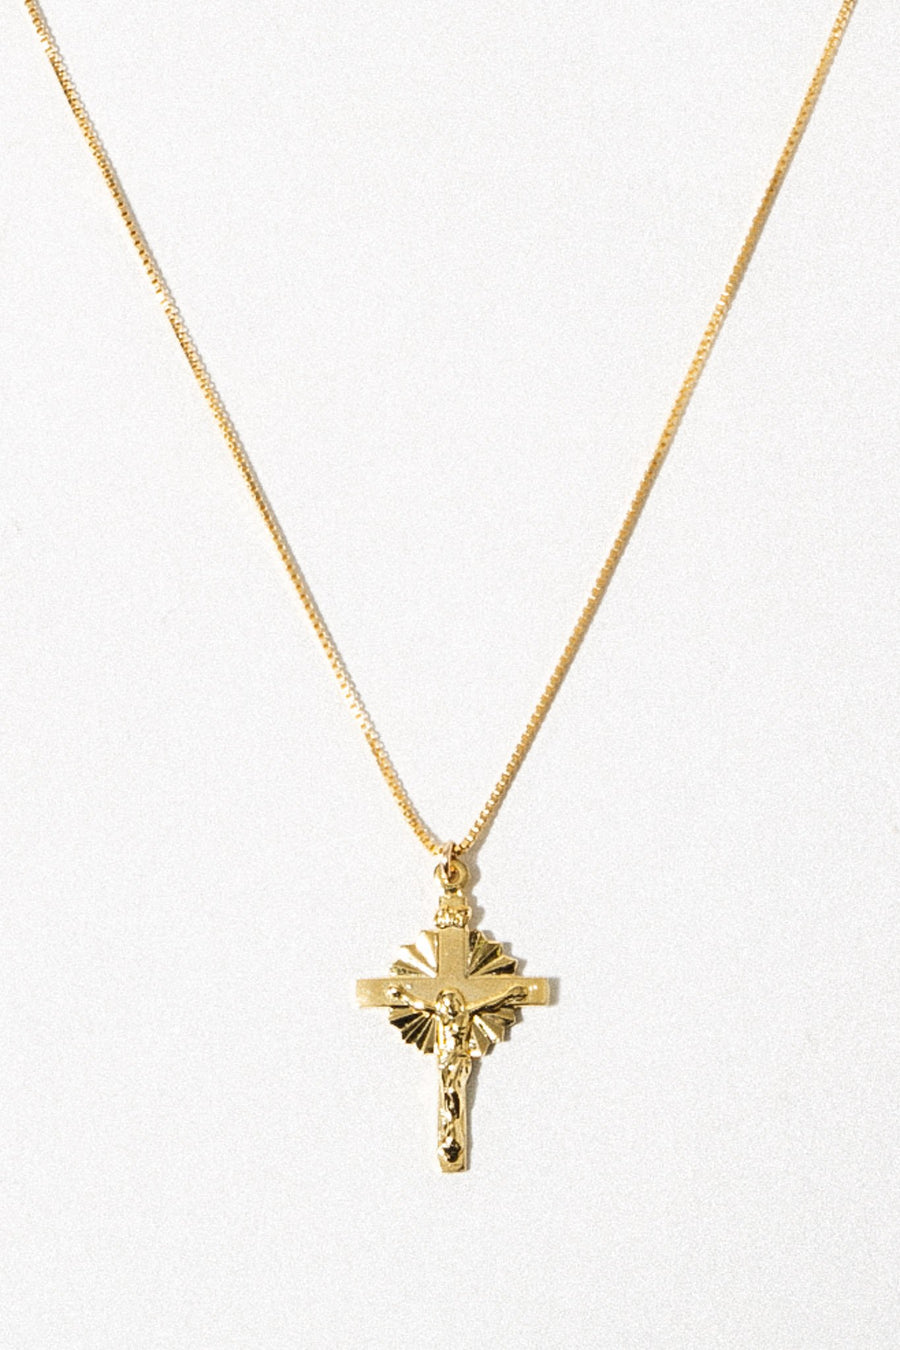 Gempacked Jewelry Son of Man Necklace